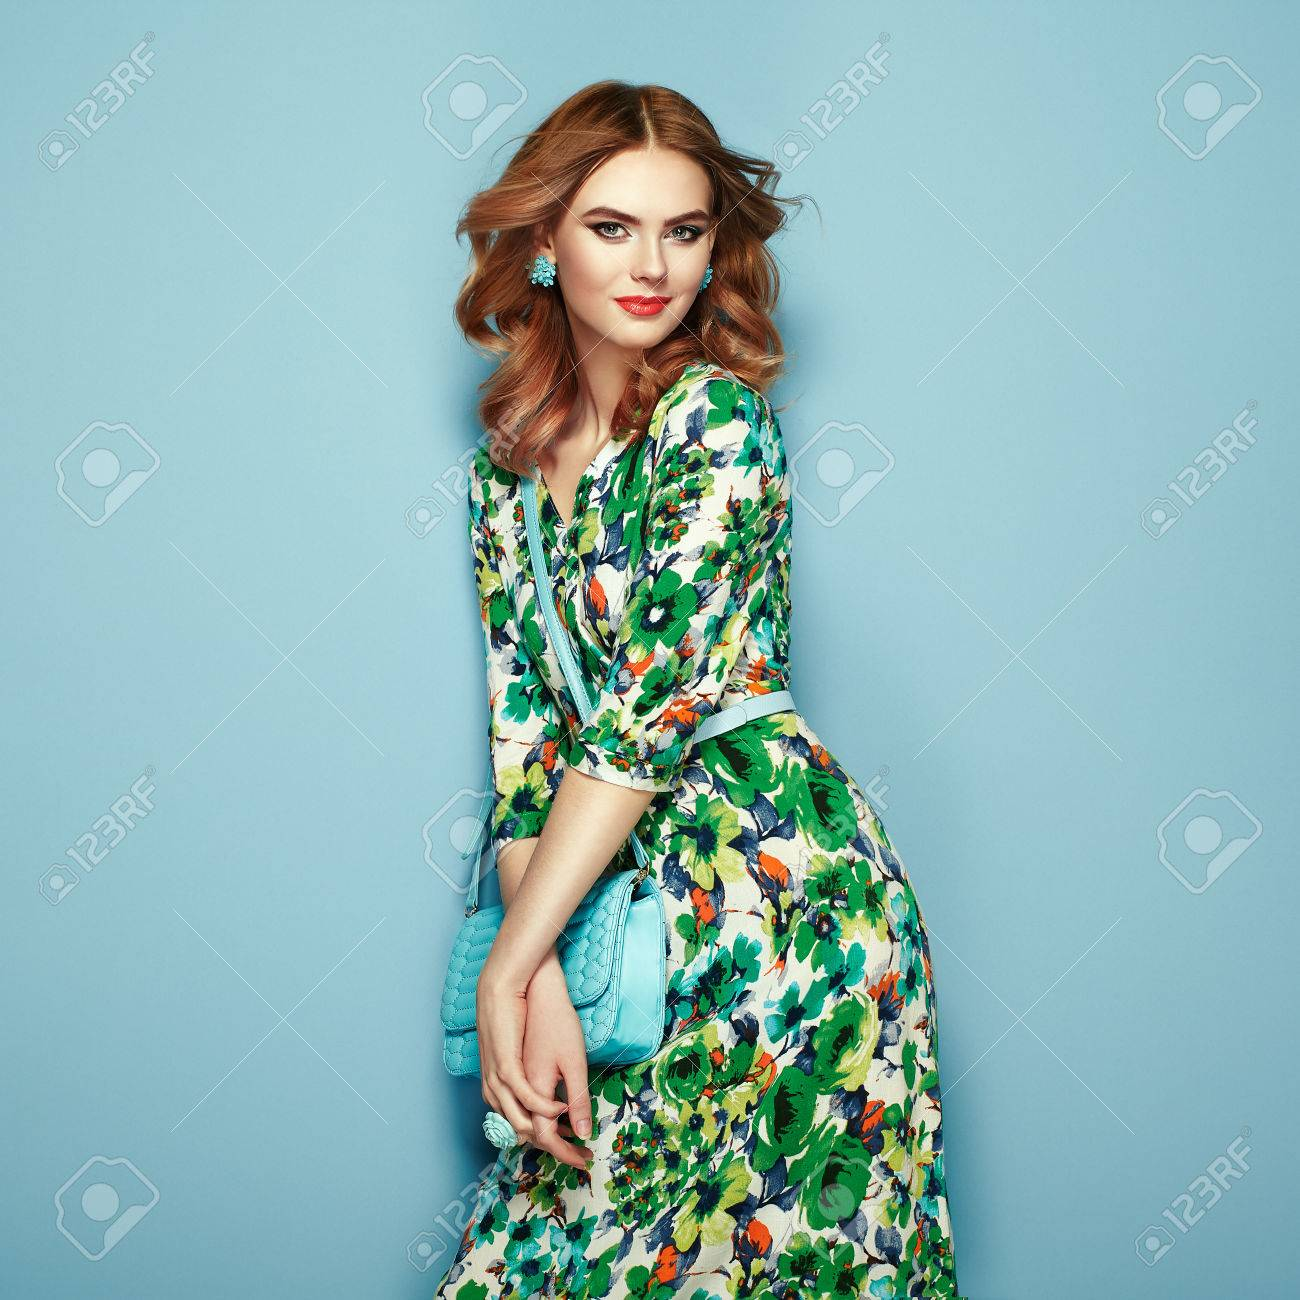 Blonde young woman in floral spring summer dress. Girl posing on a pink background. Summer floral outfit. Stylish wavy hairstyle. Fashion photo. Glamour lady with handbag - 77028787